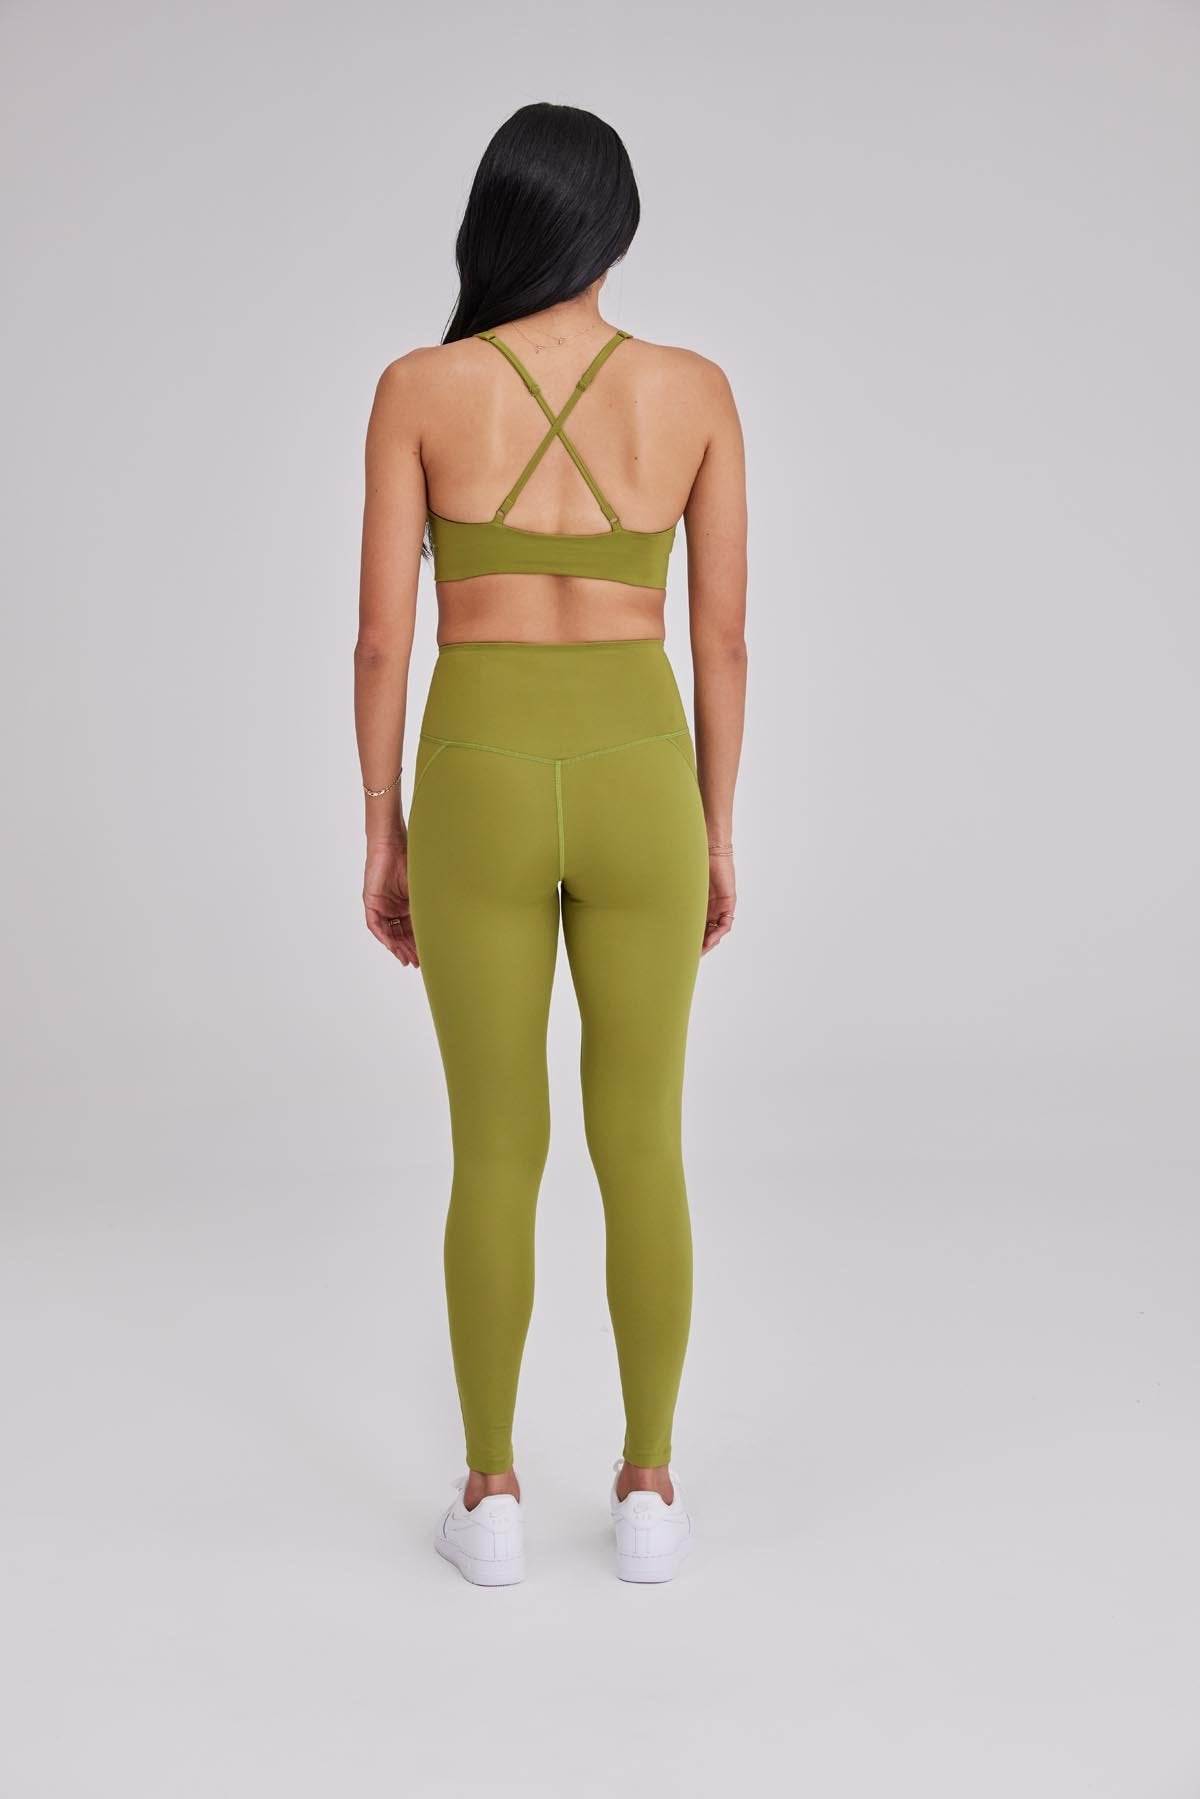 Ivy Compressive High-Rise Legging Image